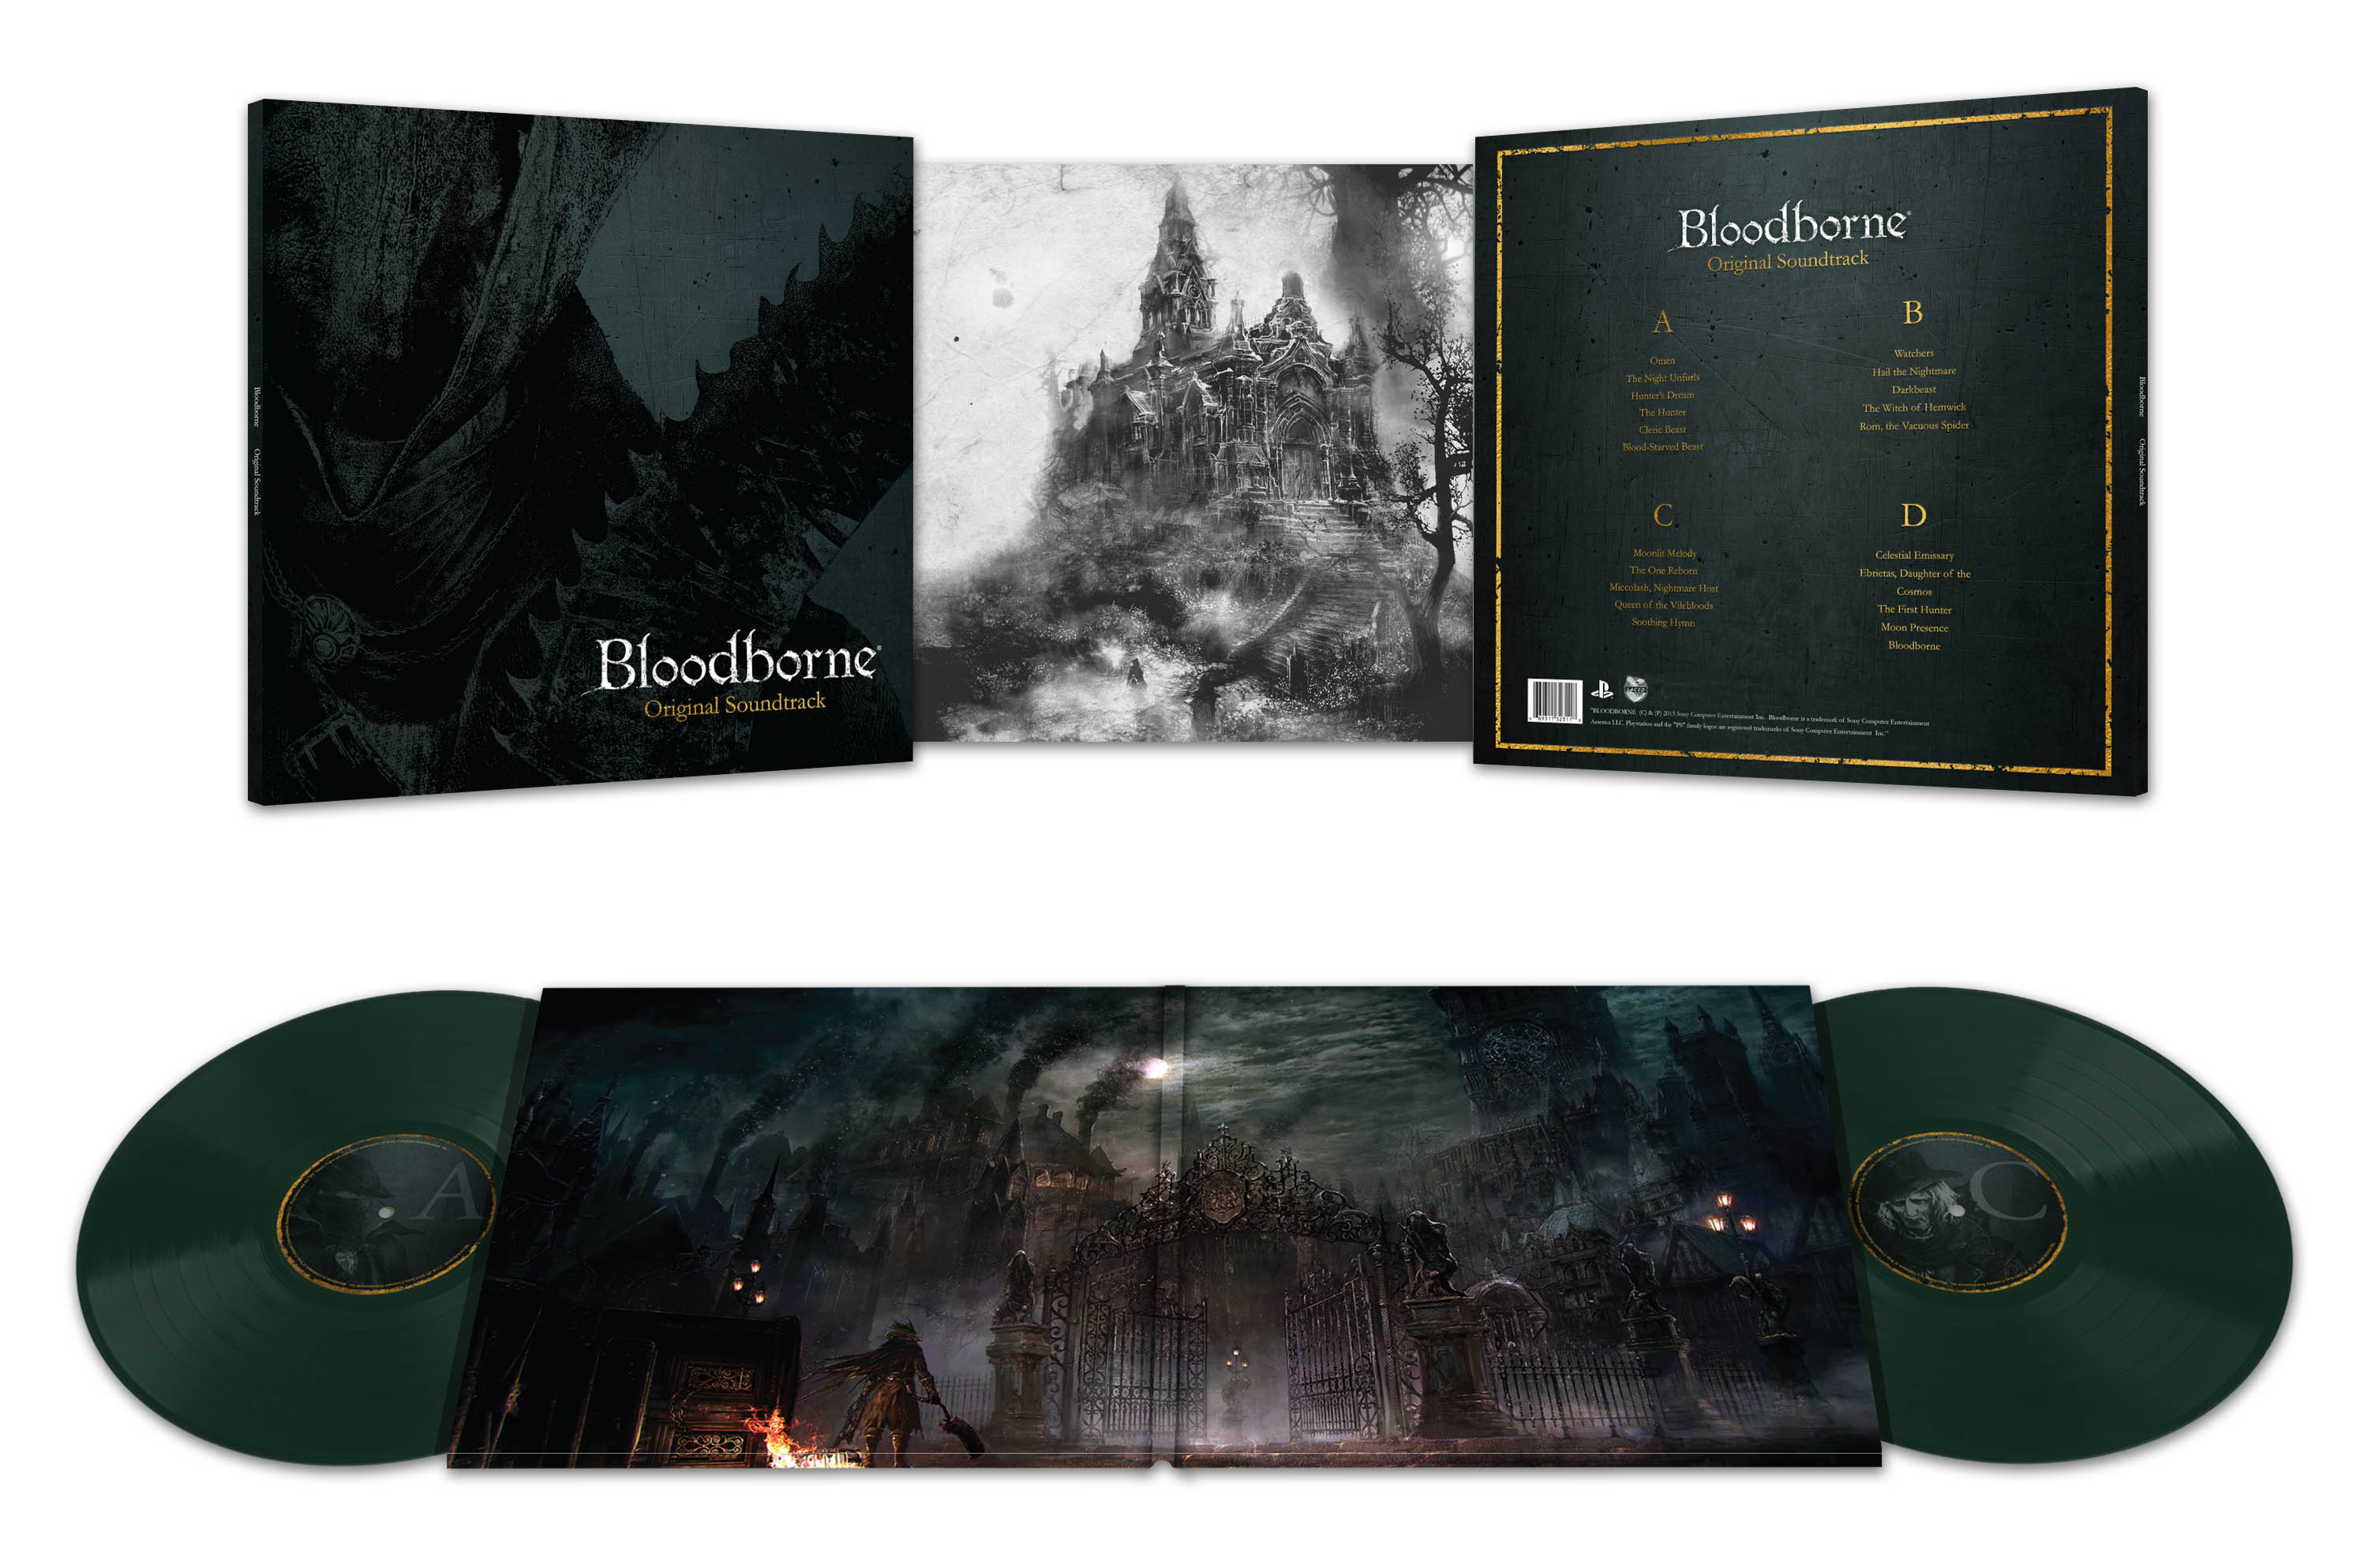 Bloodborne Soundtrack